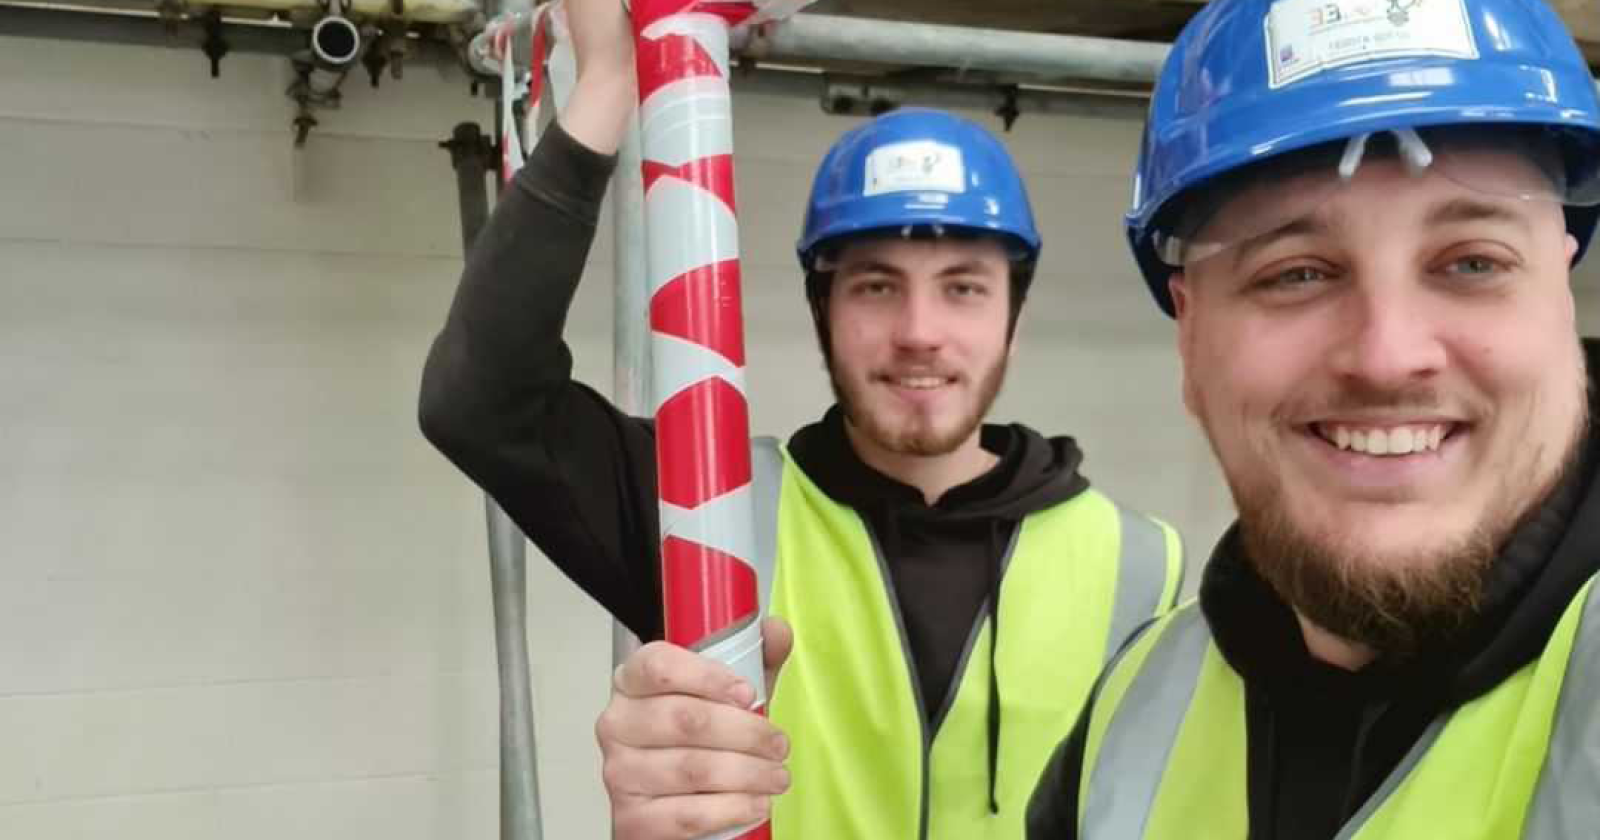 aee yorkshire trade employees smiling on the job